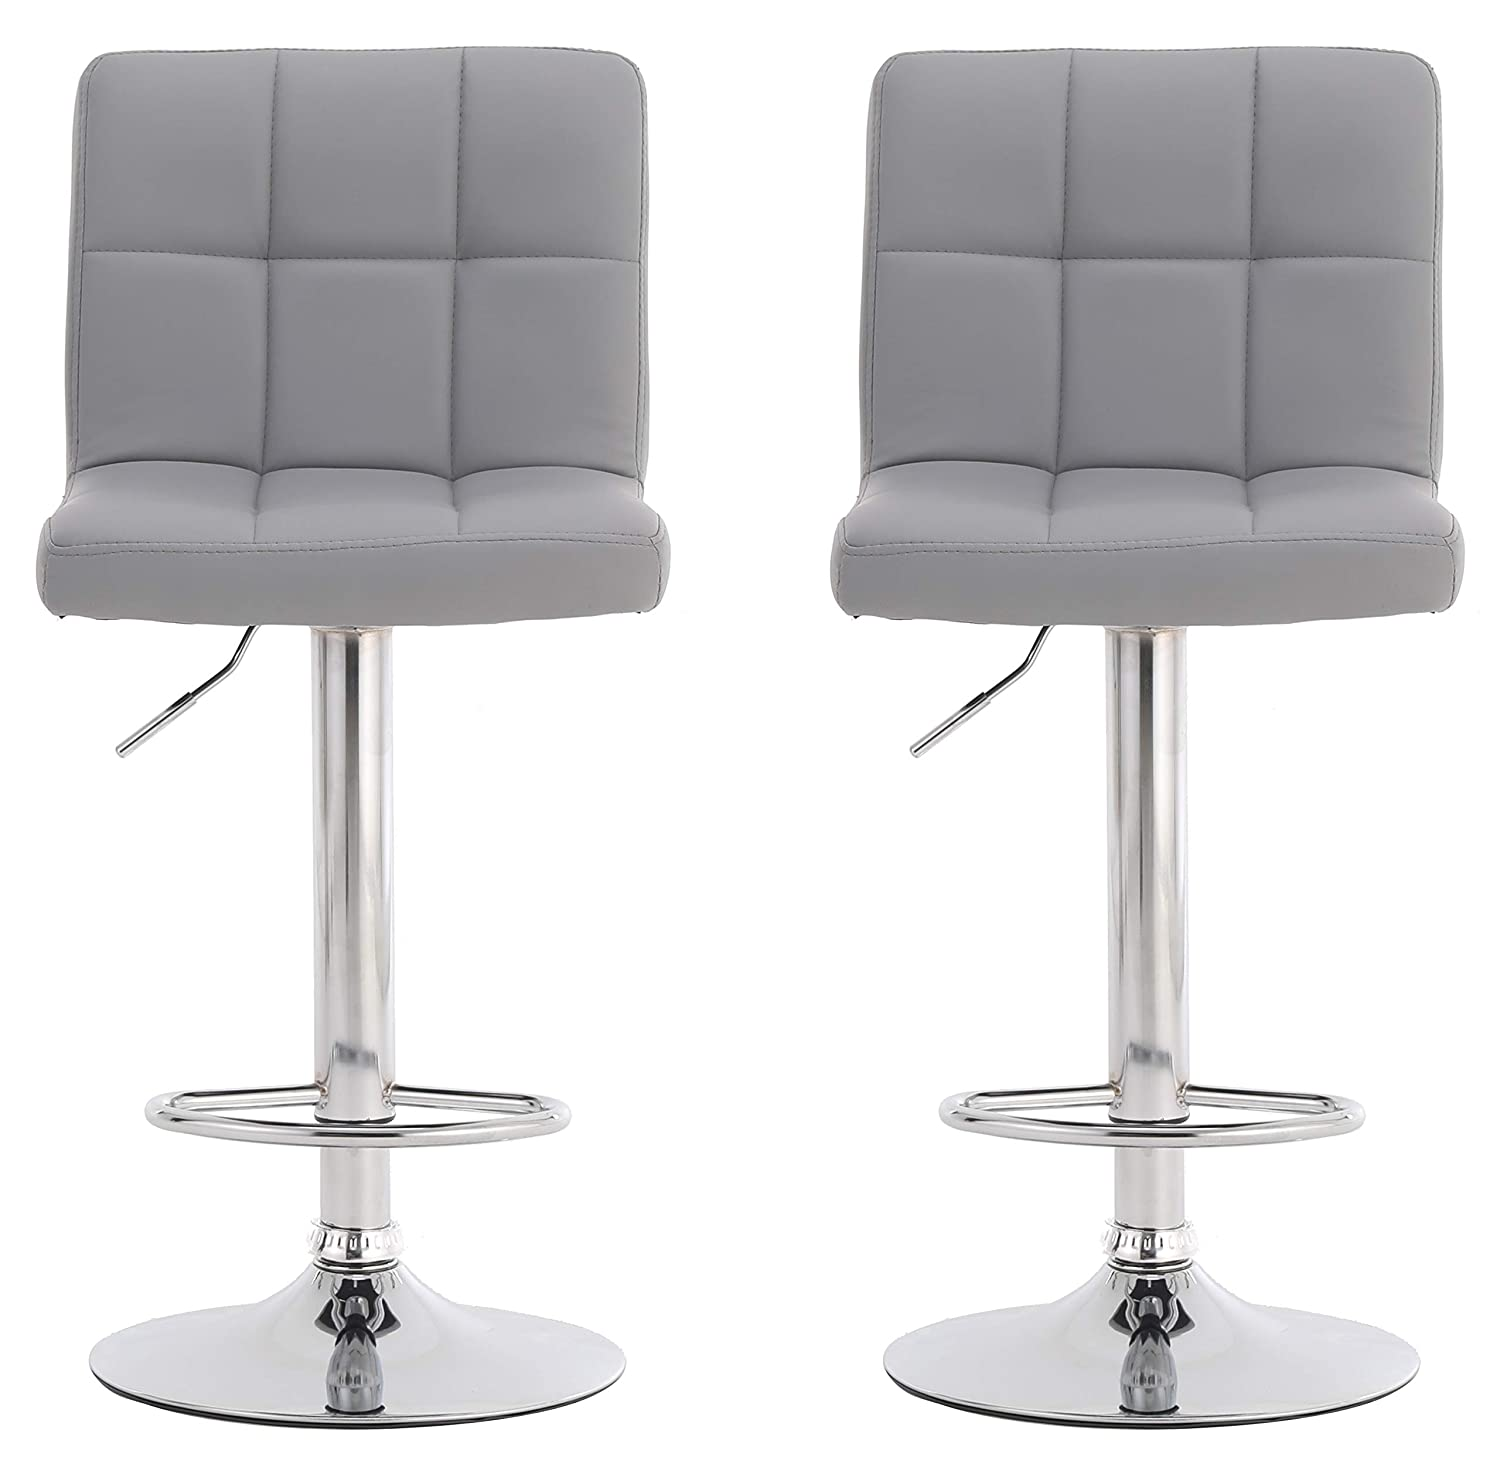 Fine Millhouse Pair Of Cuban Bar Stools Set With Backrest Leatherette Exterior Adjustable Swivel Gas Lift Chrome Footrest And Base For Breakfast Bar Cjindustries Chair Design For Home Cjindustriesco